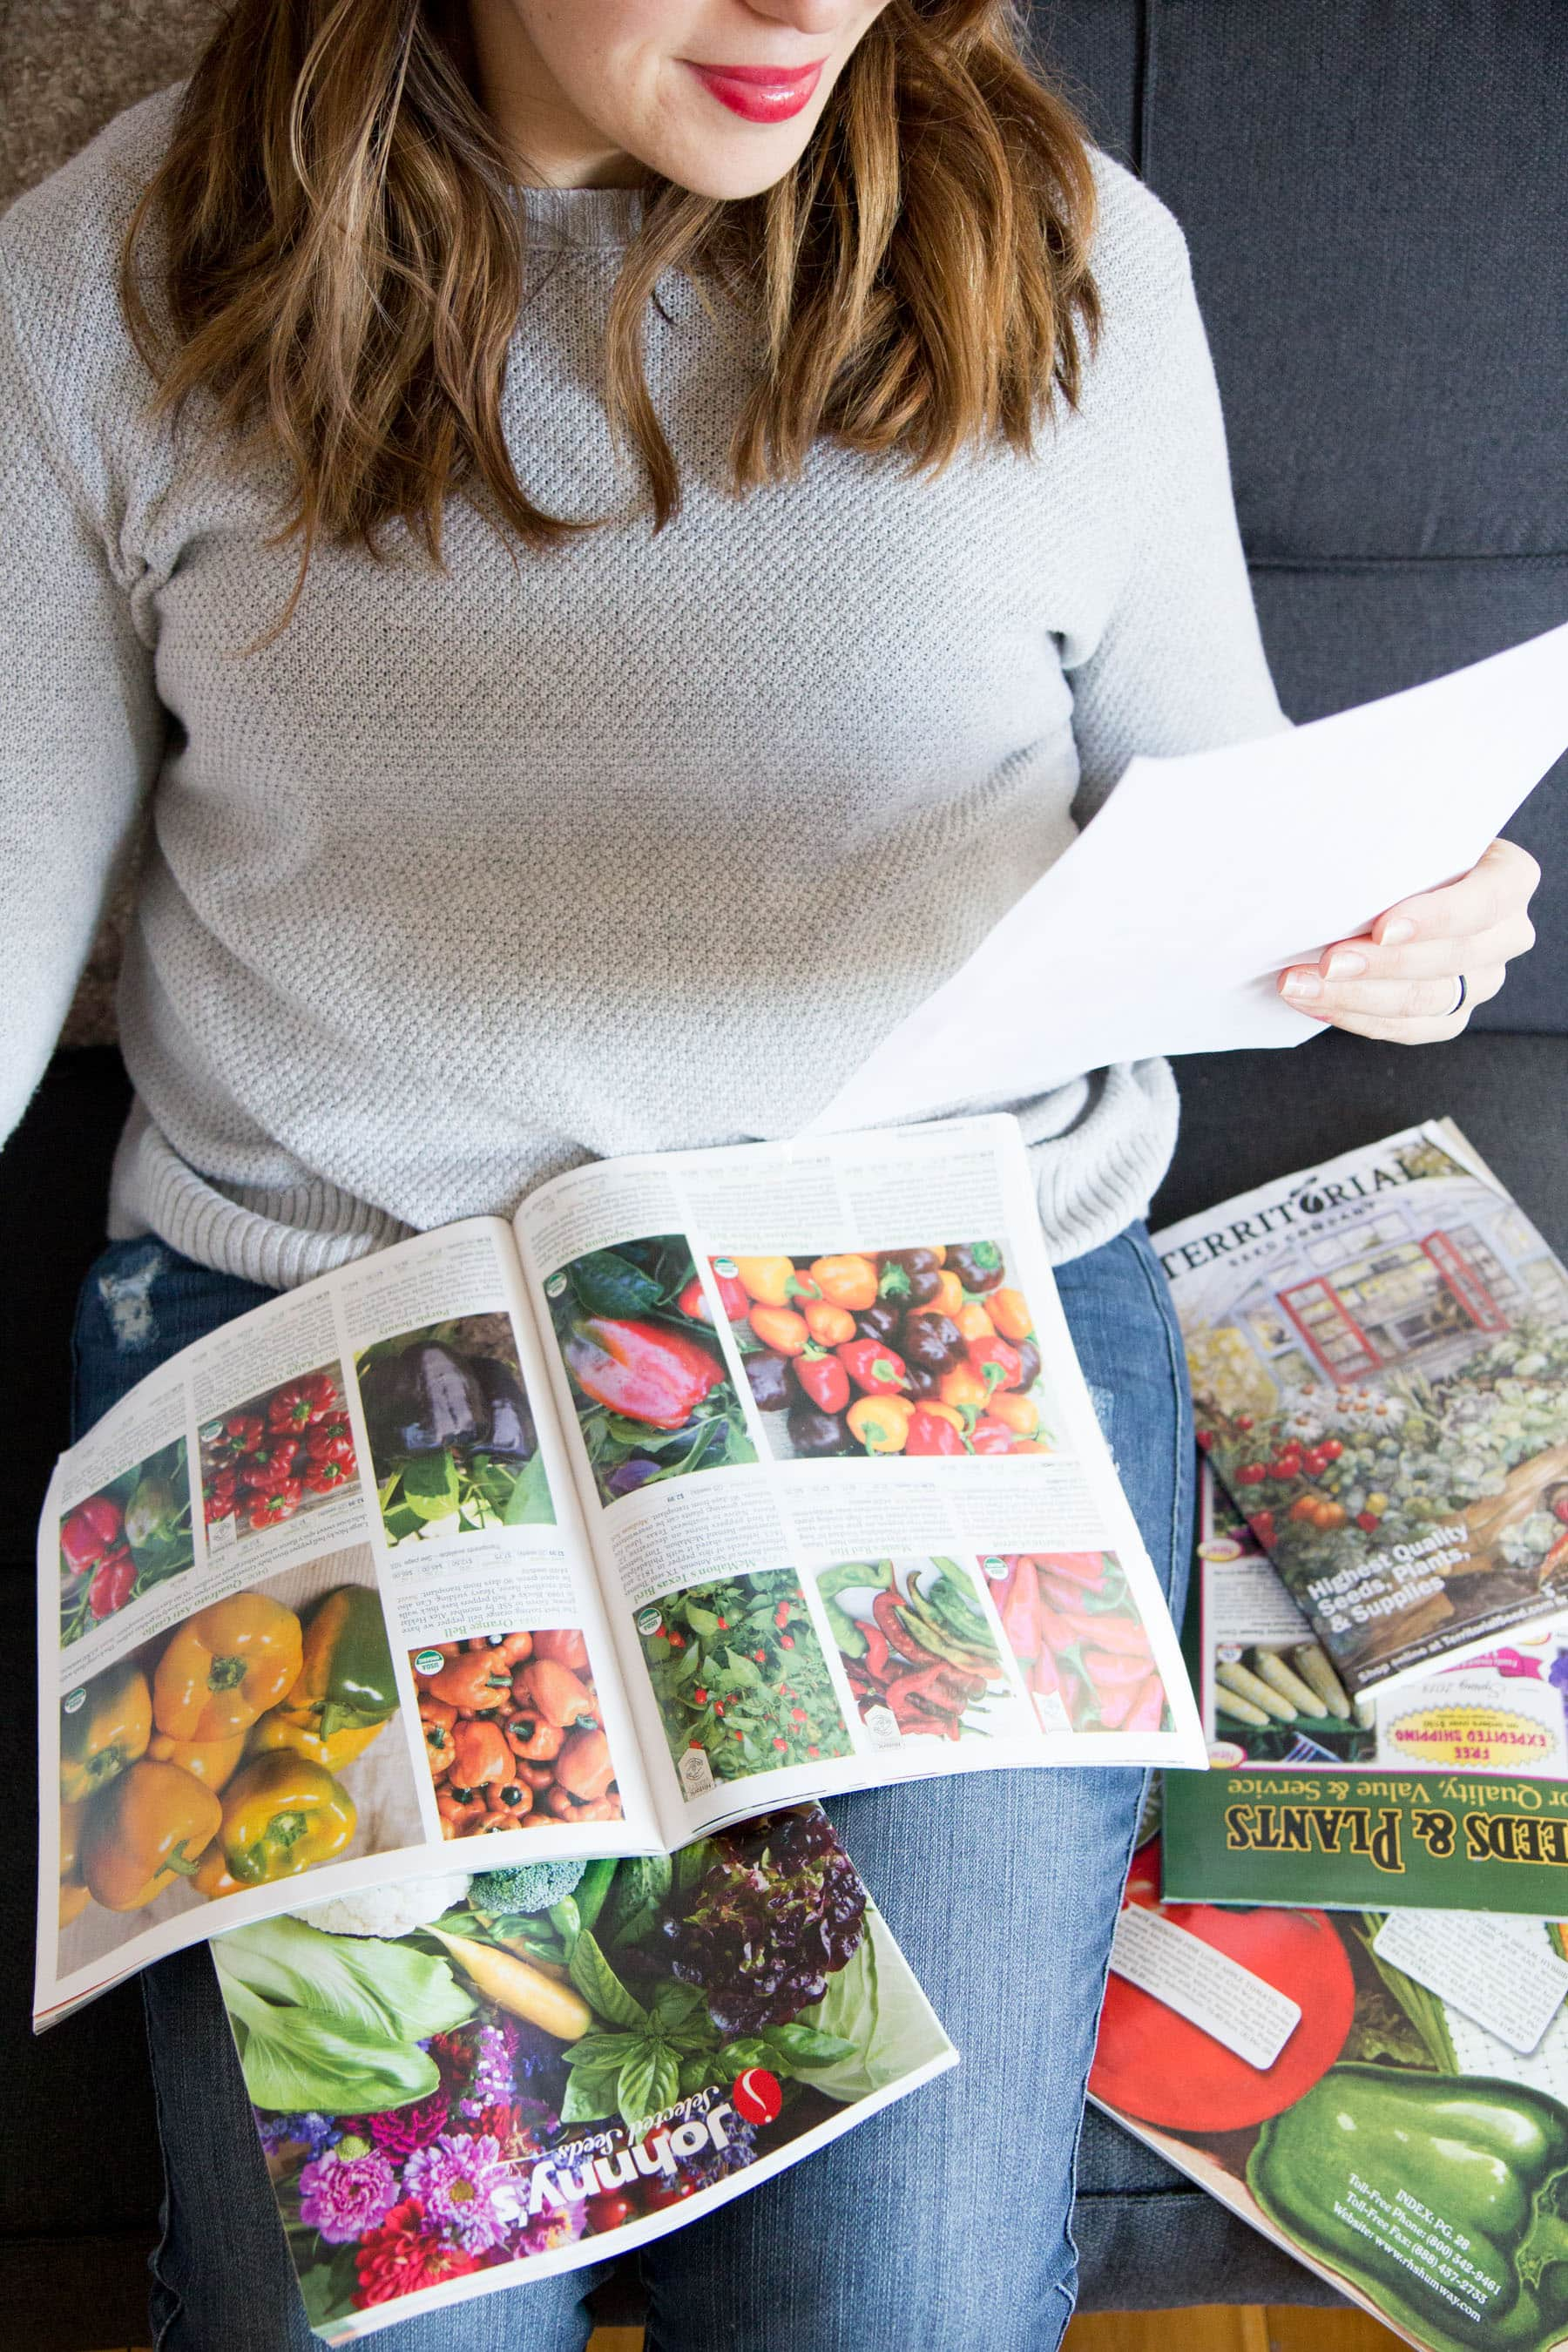 Torso of a woman looking through seed catalogs